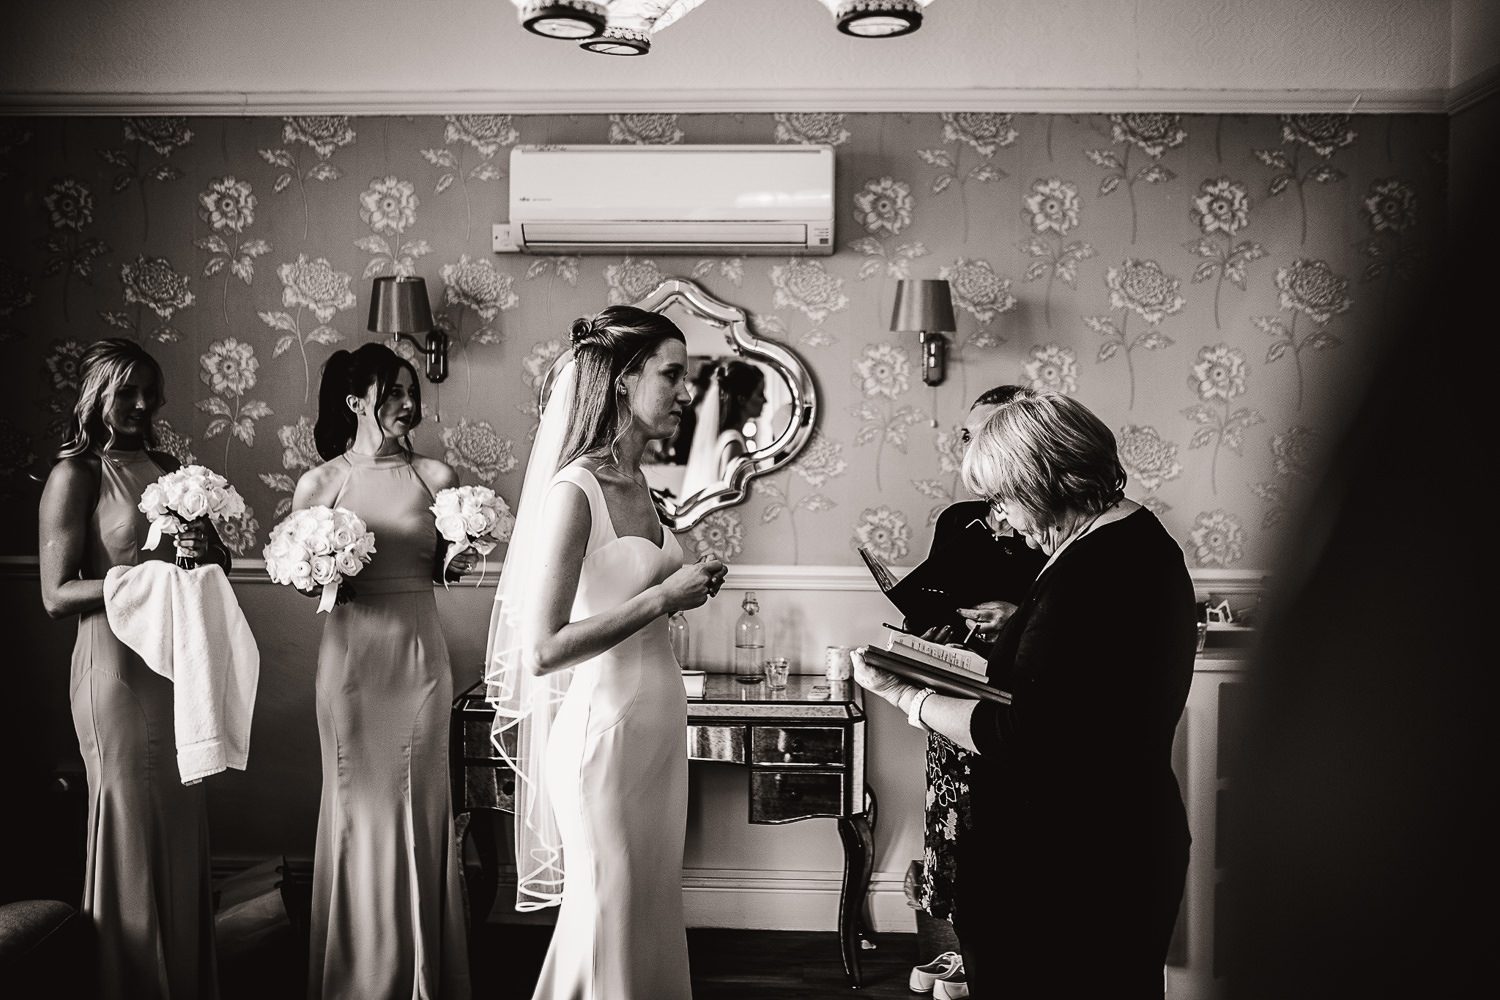 registrar talking to the bride in the hotel room